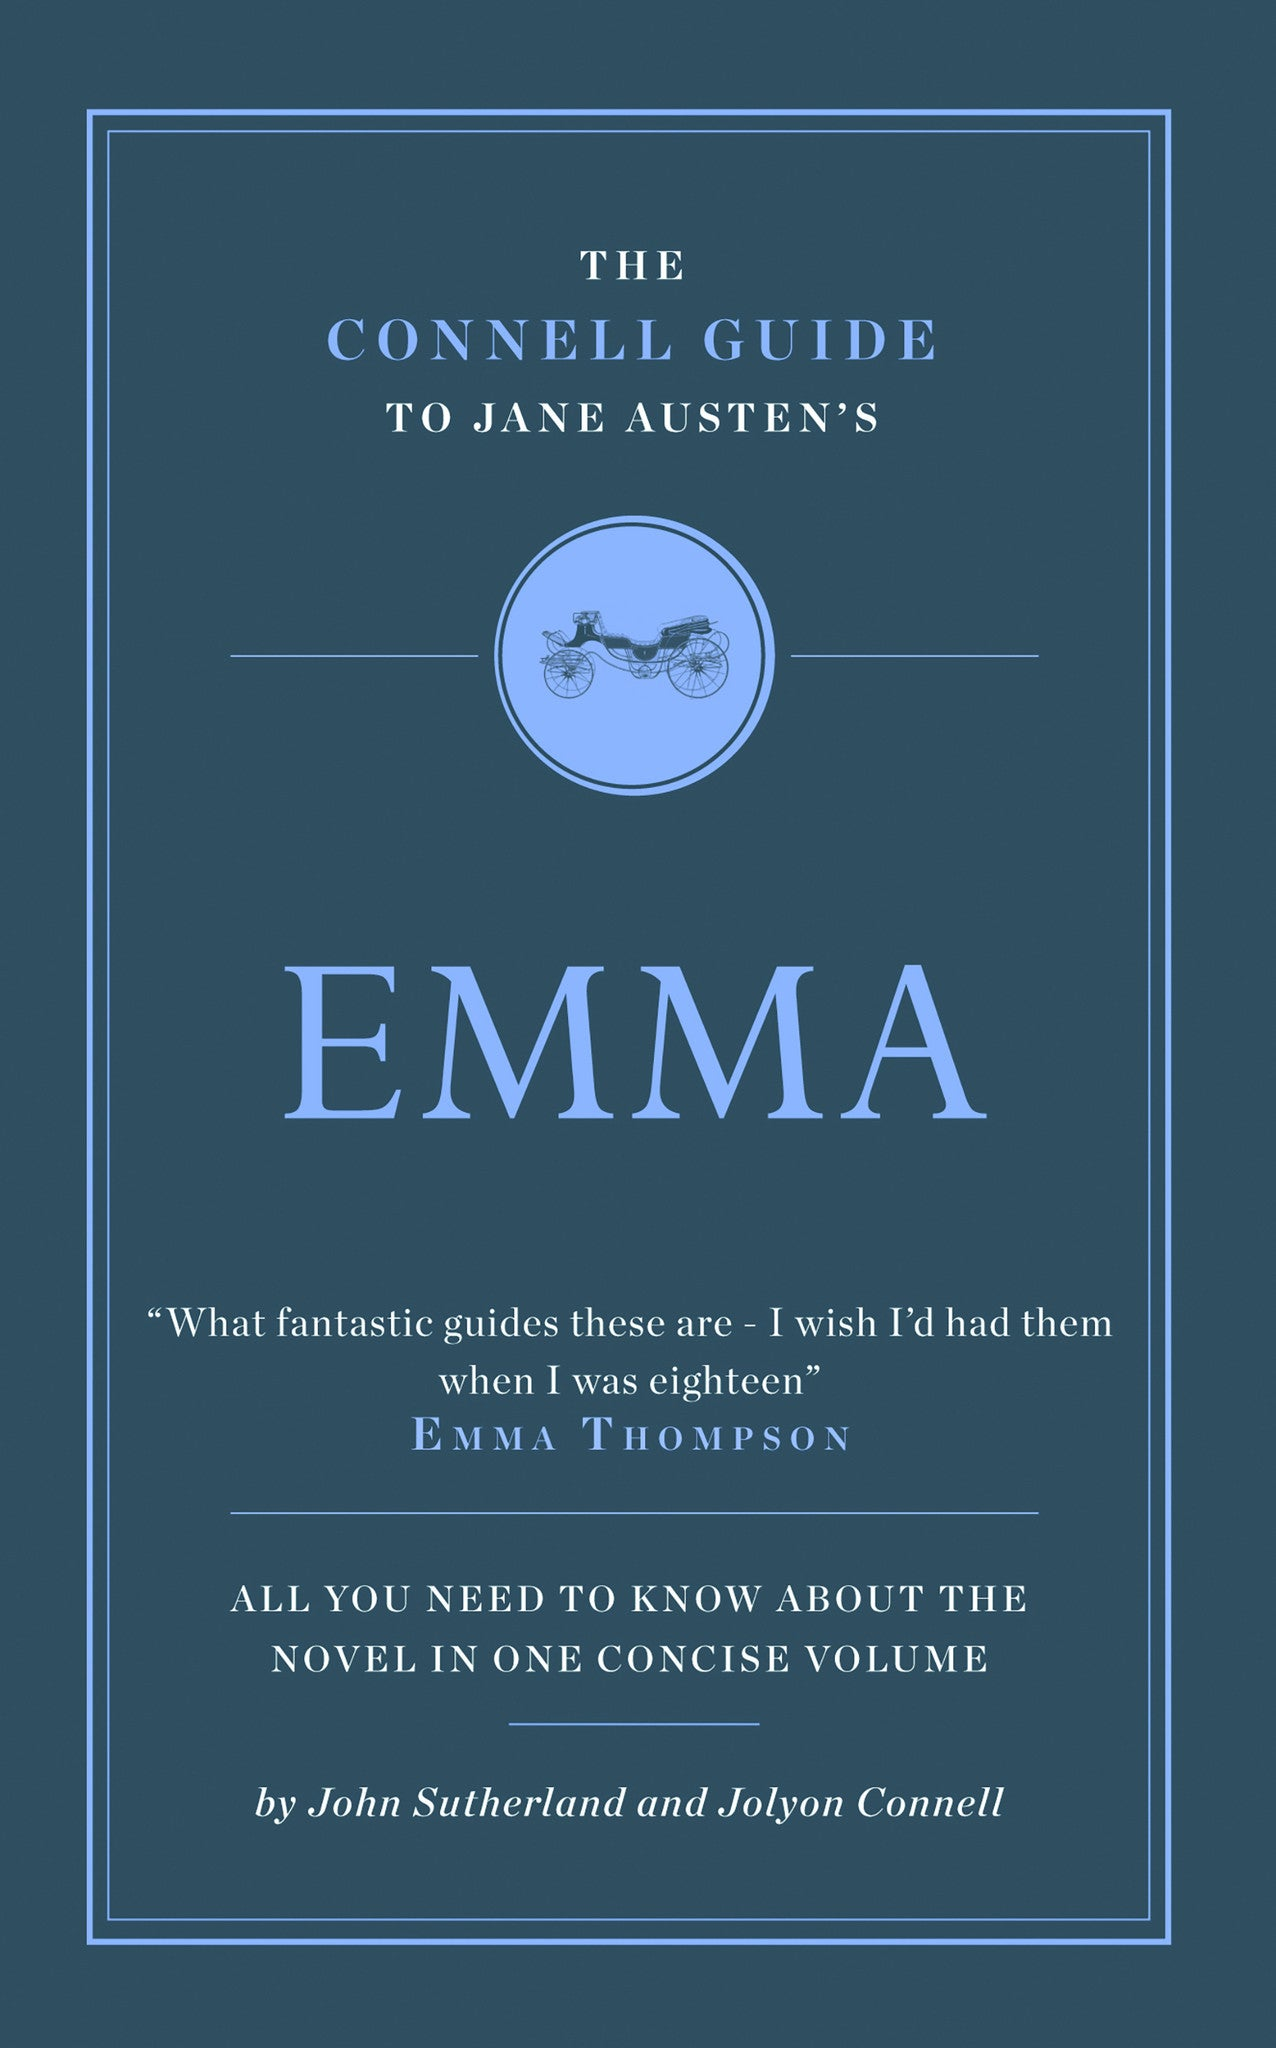 essay on emma by jane austen on characterization in emma by jane austen introduction jane austen, one of the distinguished english novelists of the 19th century, is indeed so fine an artist and credited with having brought the english novel to its maturity.